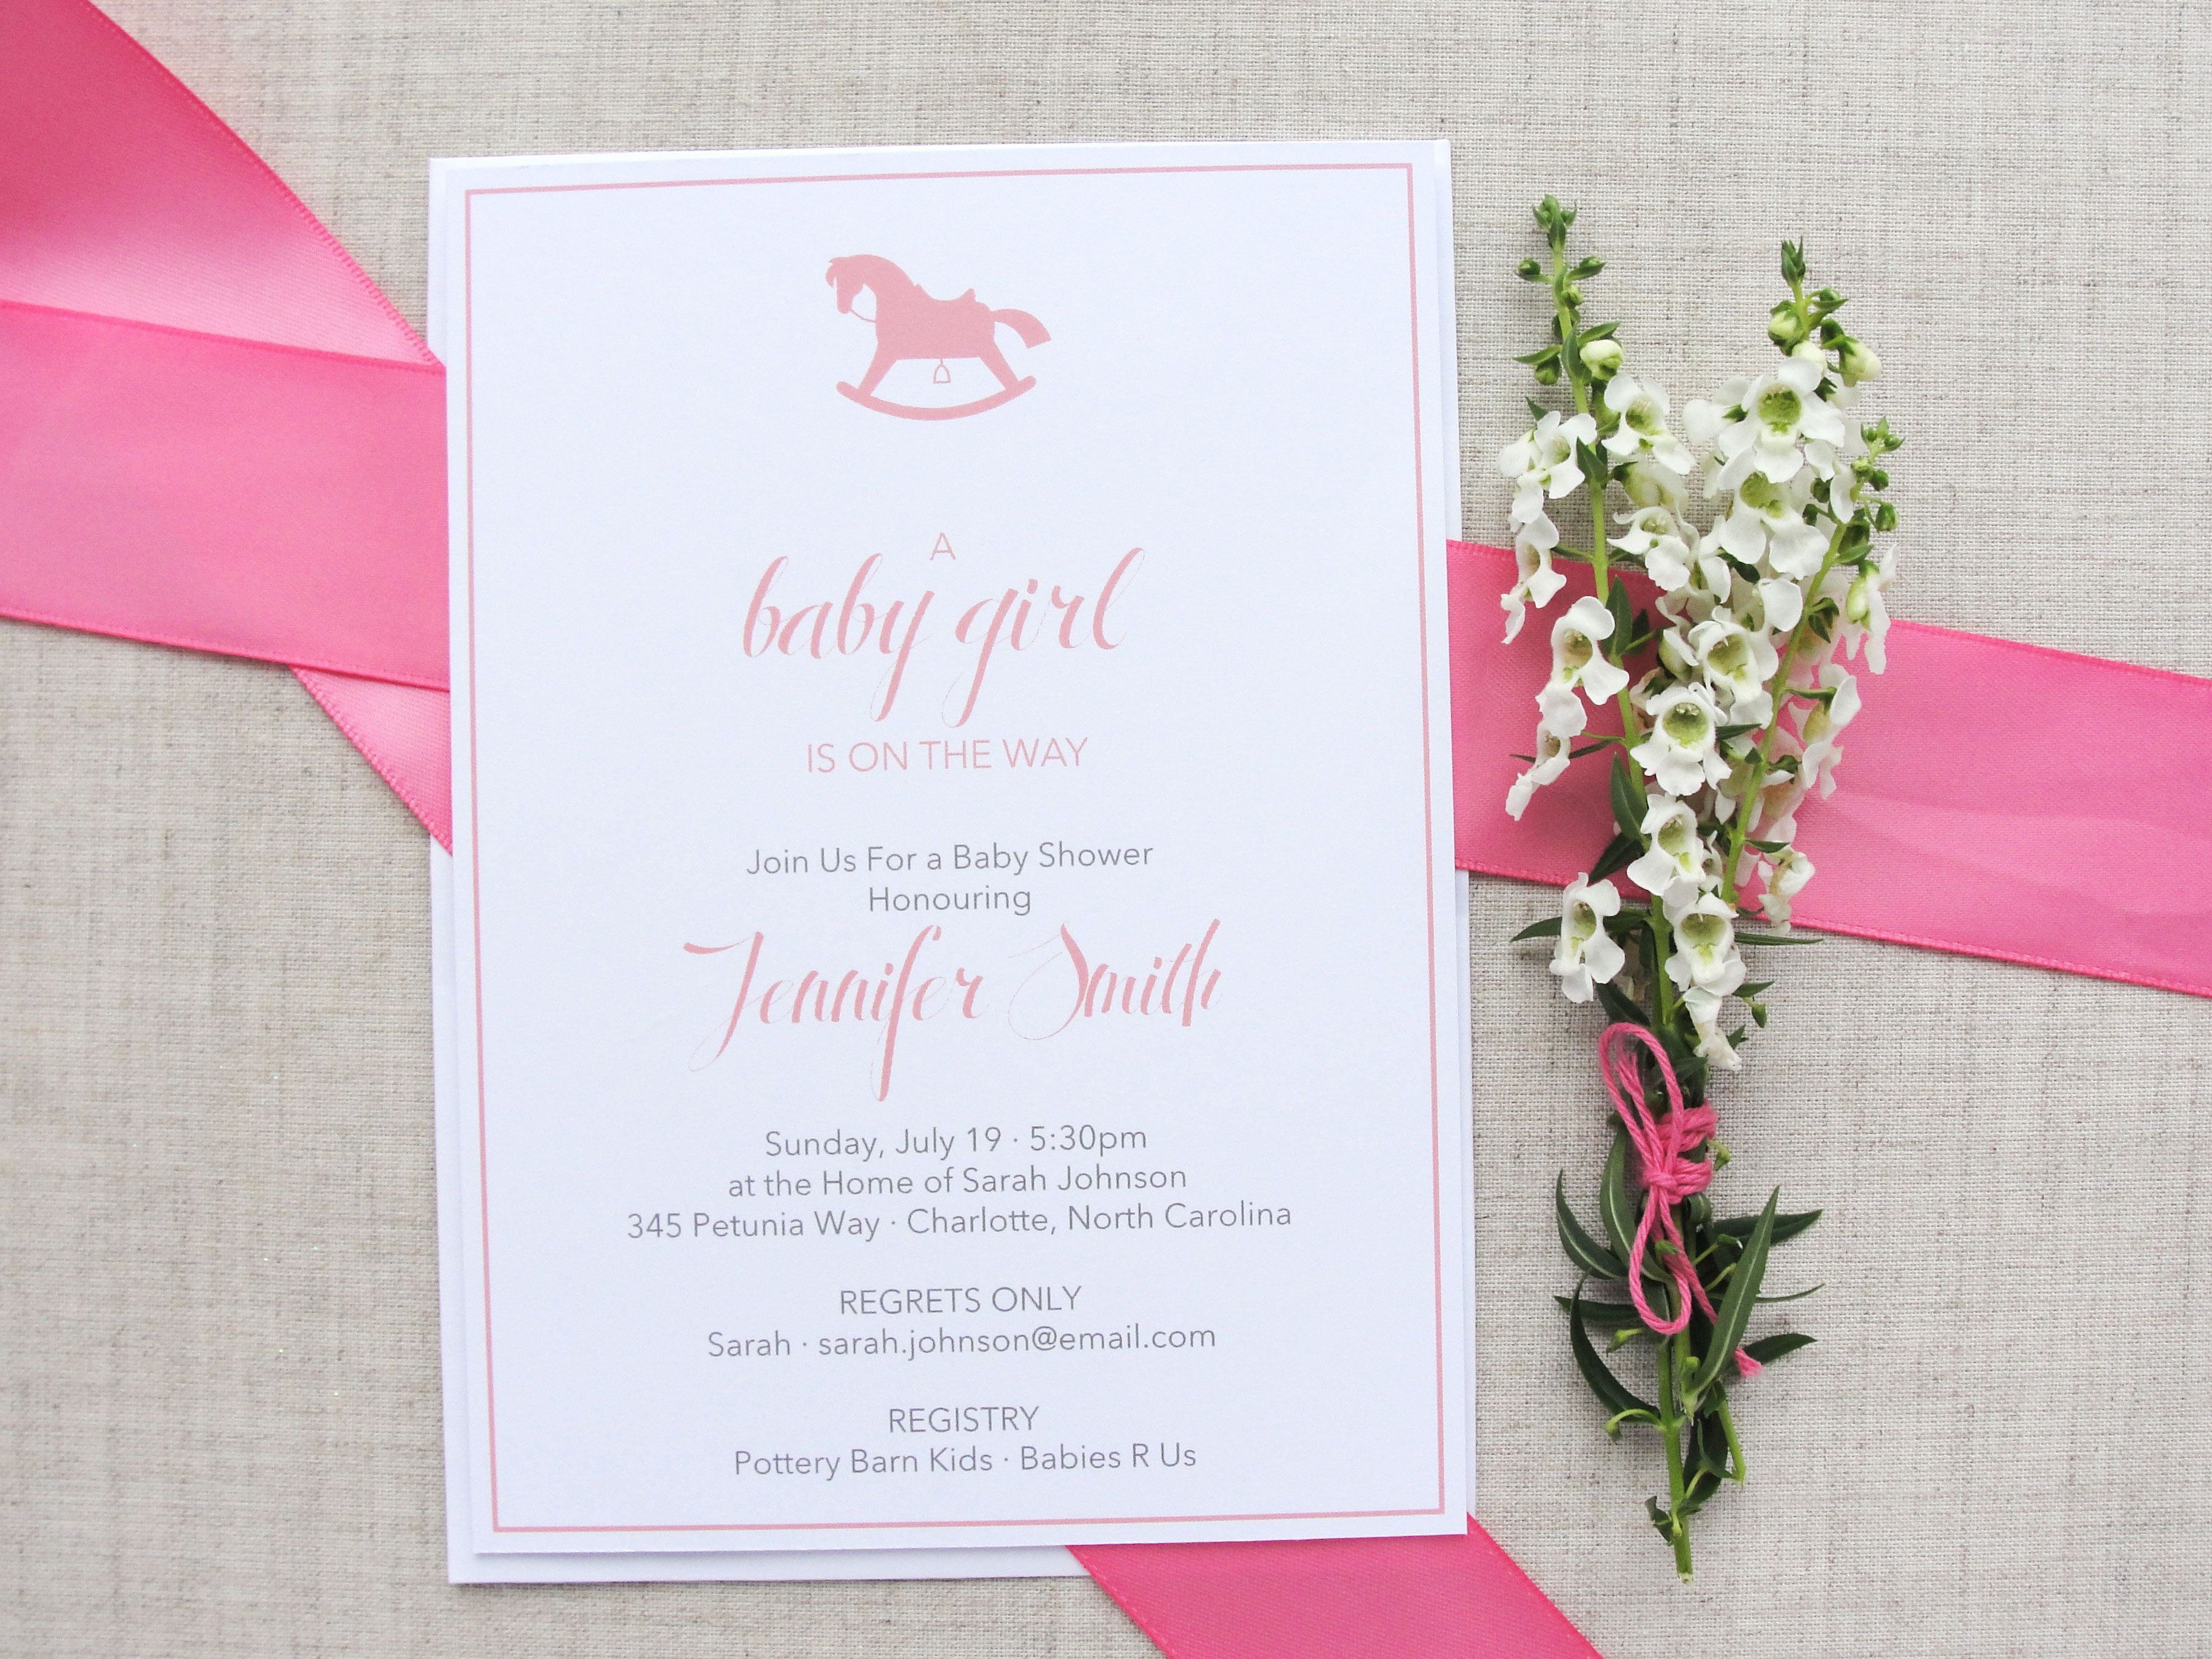 Rocking Horse Baby Shower Invitations | Meredith Collie ...